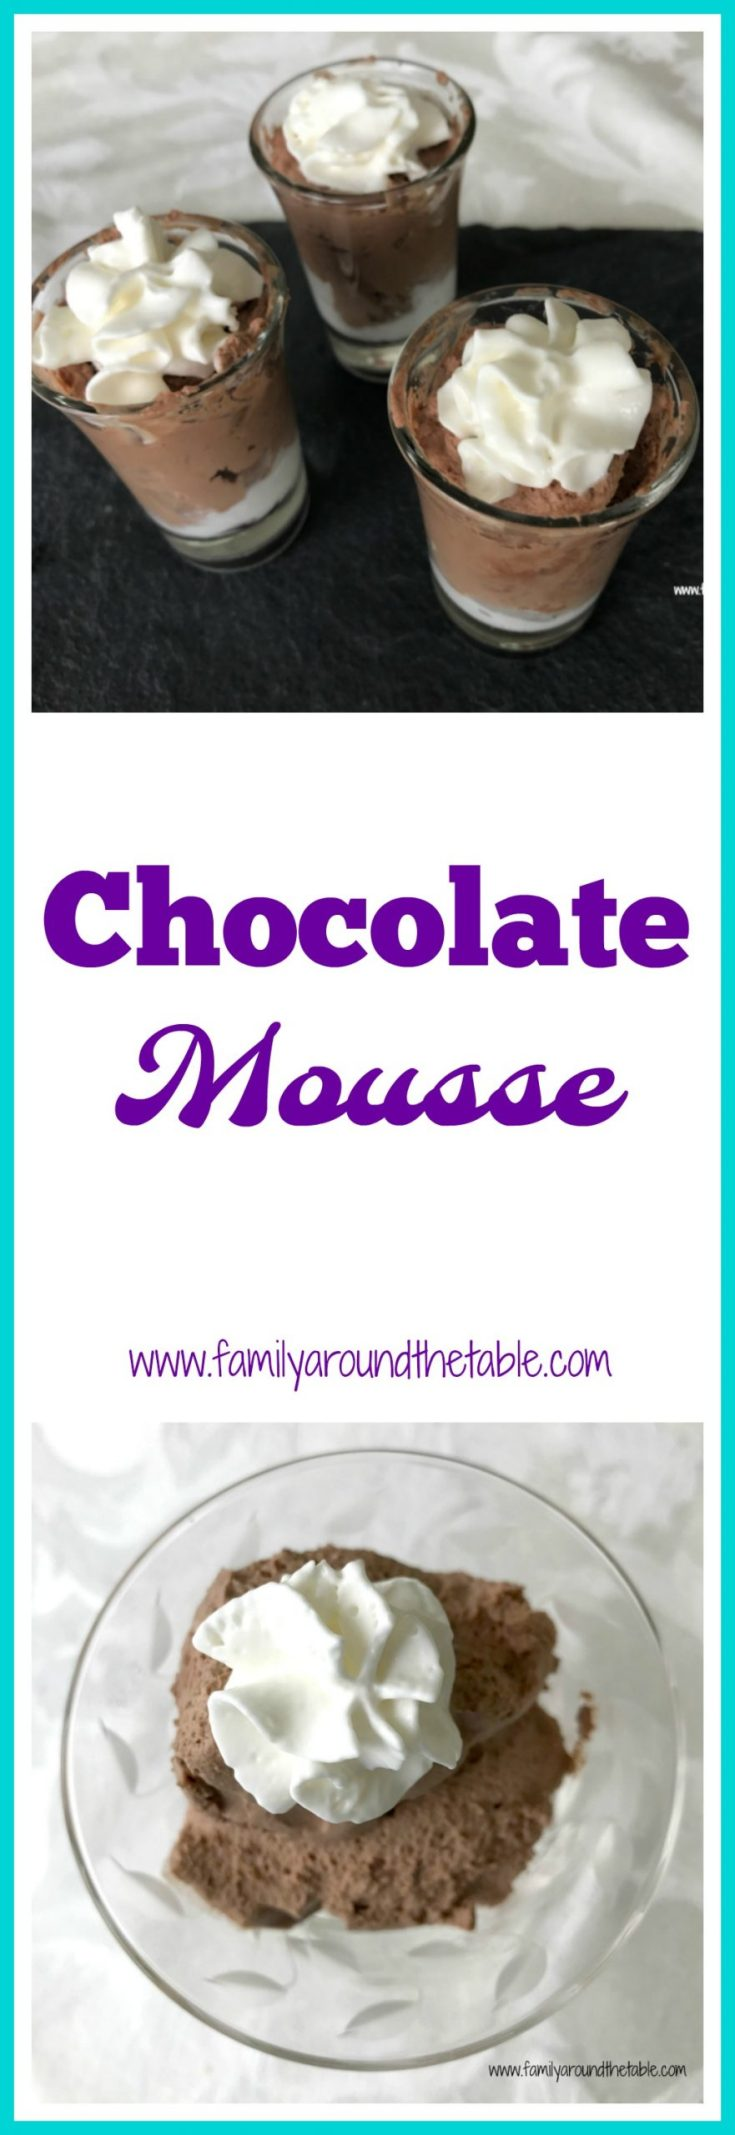 Chocolate mousse is perfect for entertaining. Serve in shot glasses for a dessert buffet.Chocolate mousse is perfect for entertaining. Serve in shot glasses for a dessert buffet.